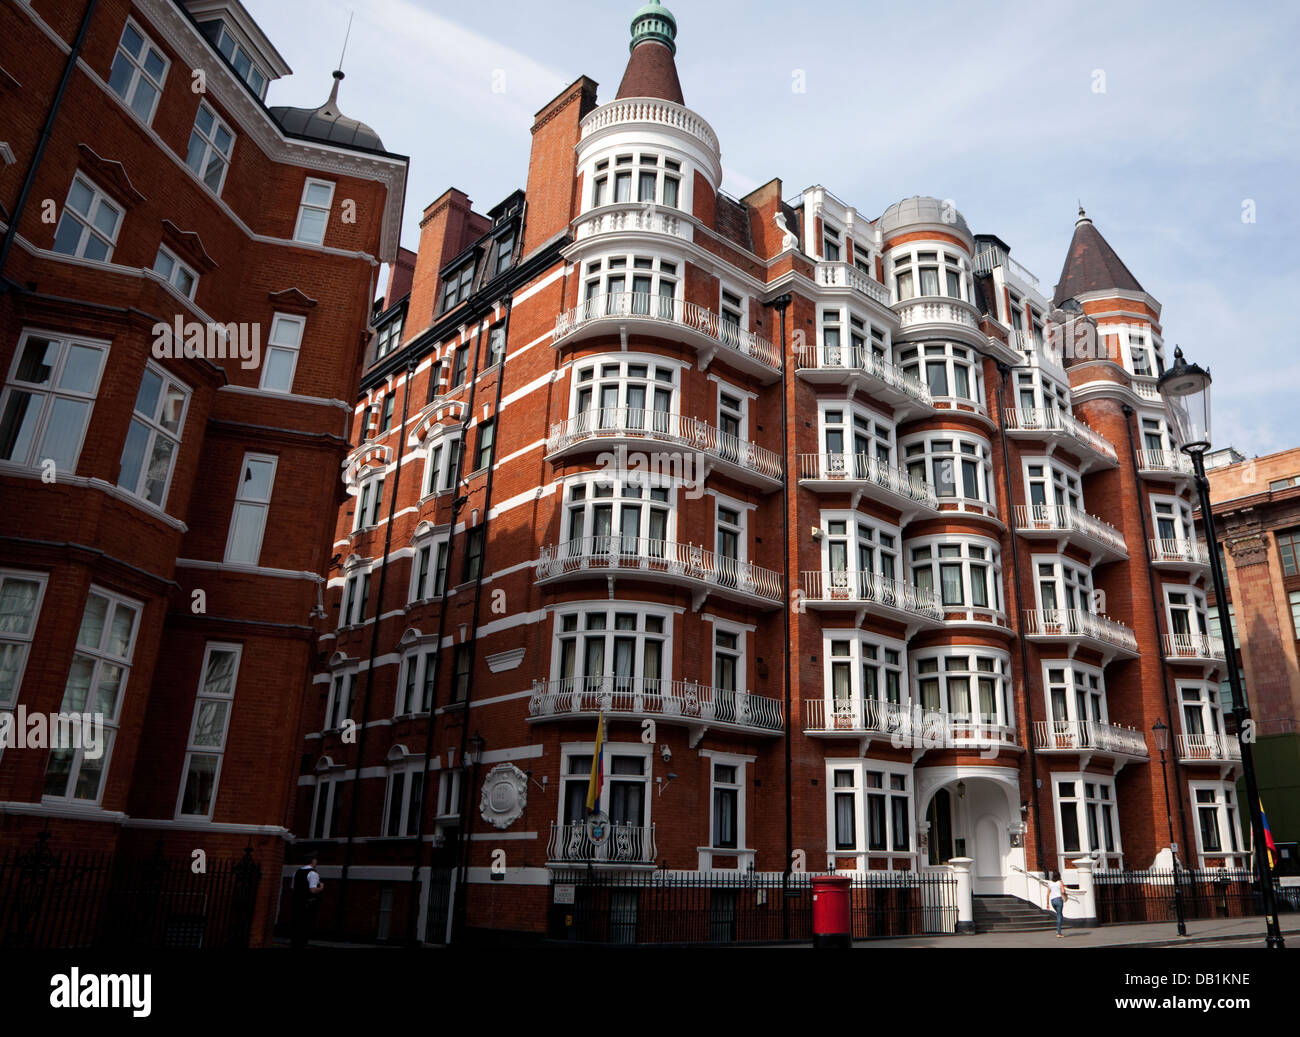 Ecuador & Colombian Embassies, Knightsbridge, London - Stock Image